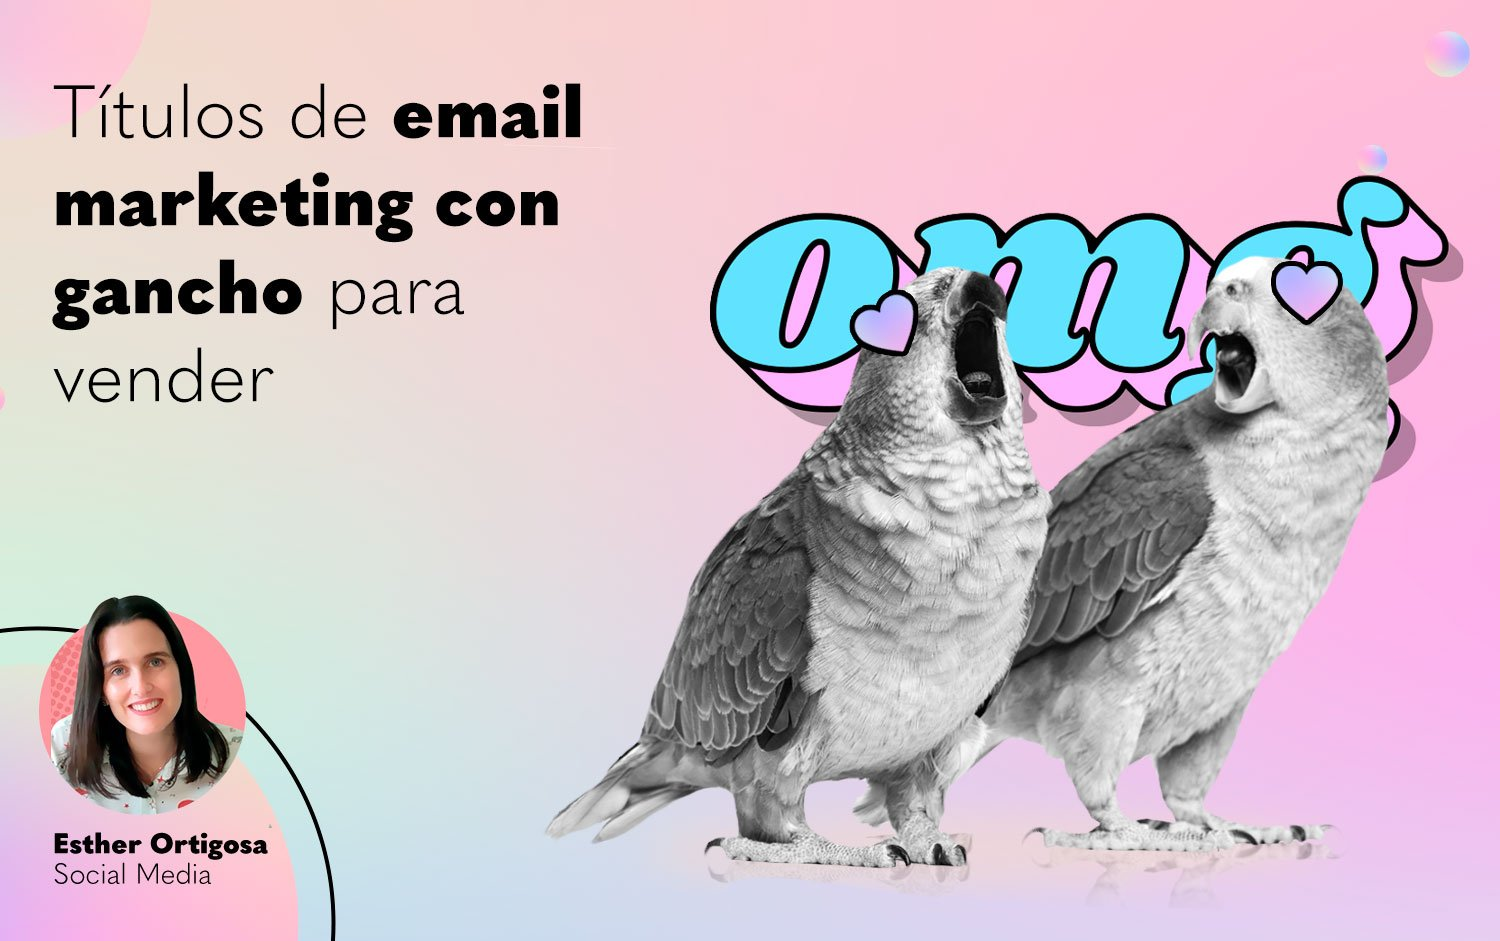 titulos-de-email-marketing-con-gancho-para-vender